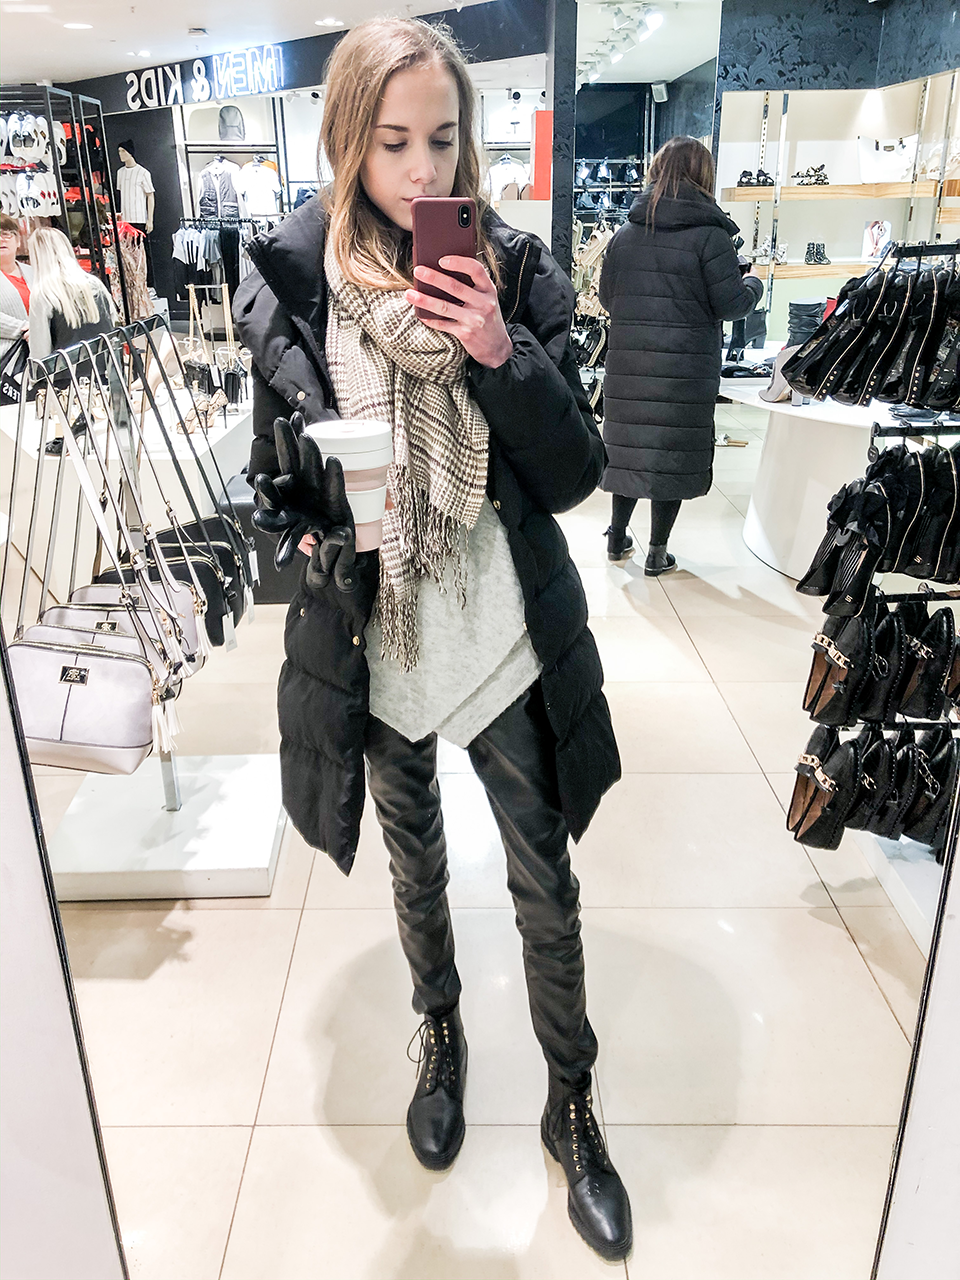 Winter outfit with faux leather leggings and puffer coat - Talviasu mustan toppatakin ja tekonahkaleggingsien kanssa